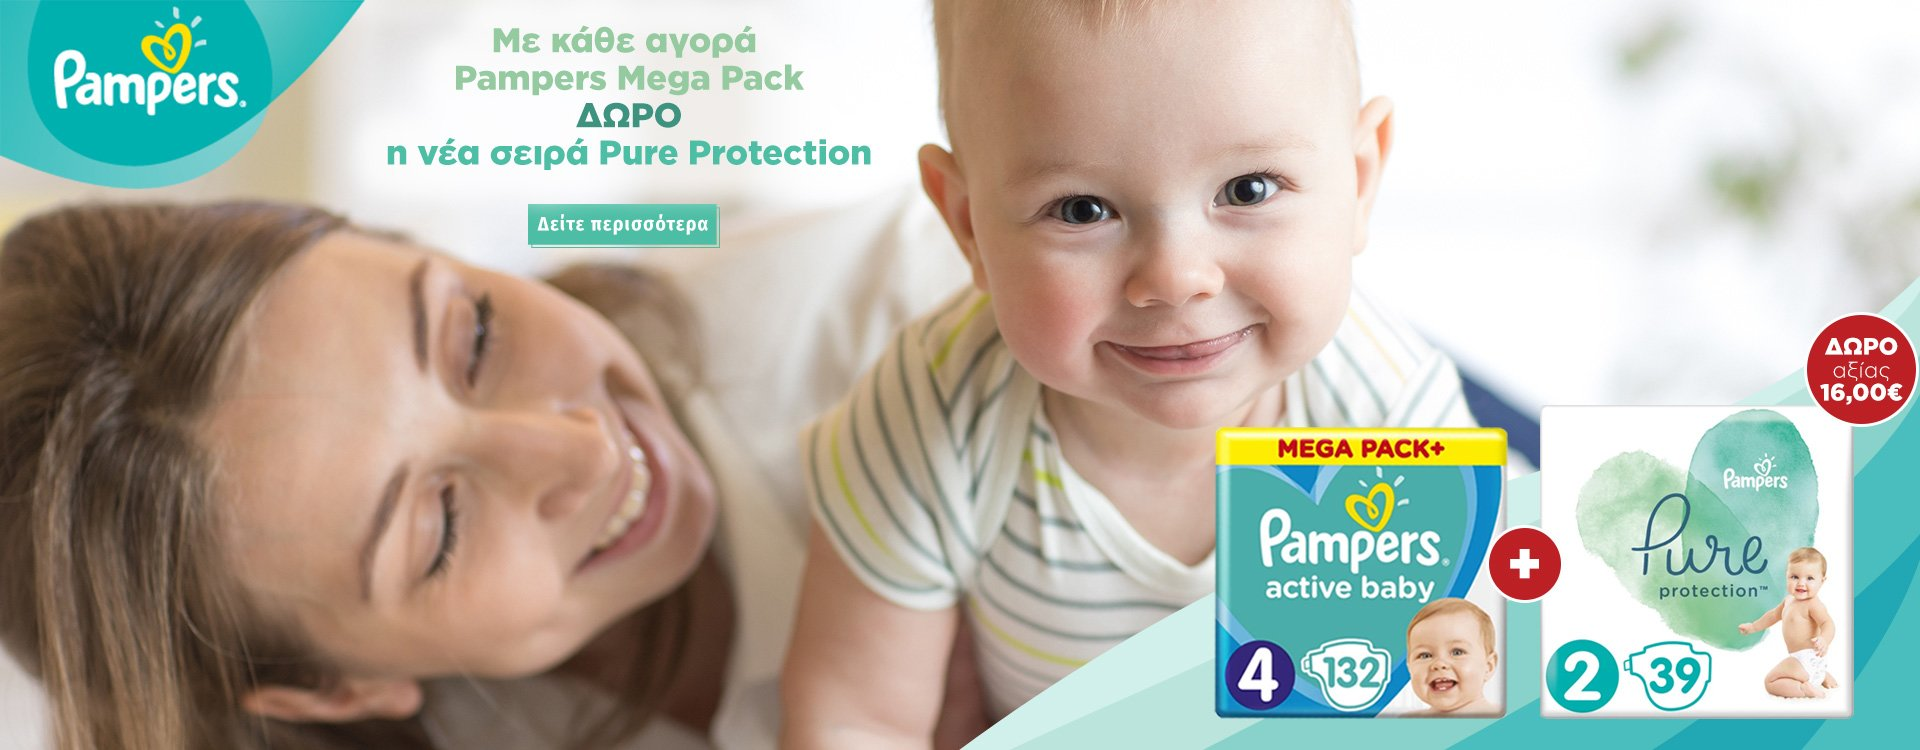 pampers mega pack & pure protection